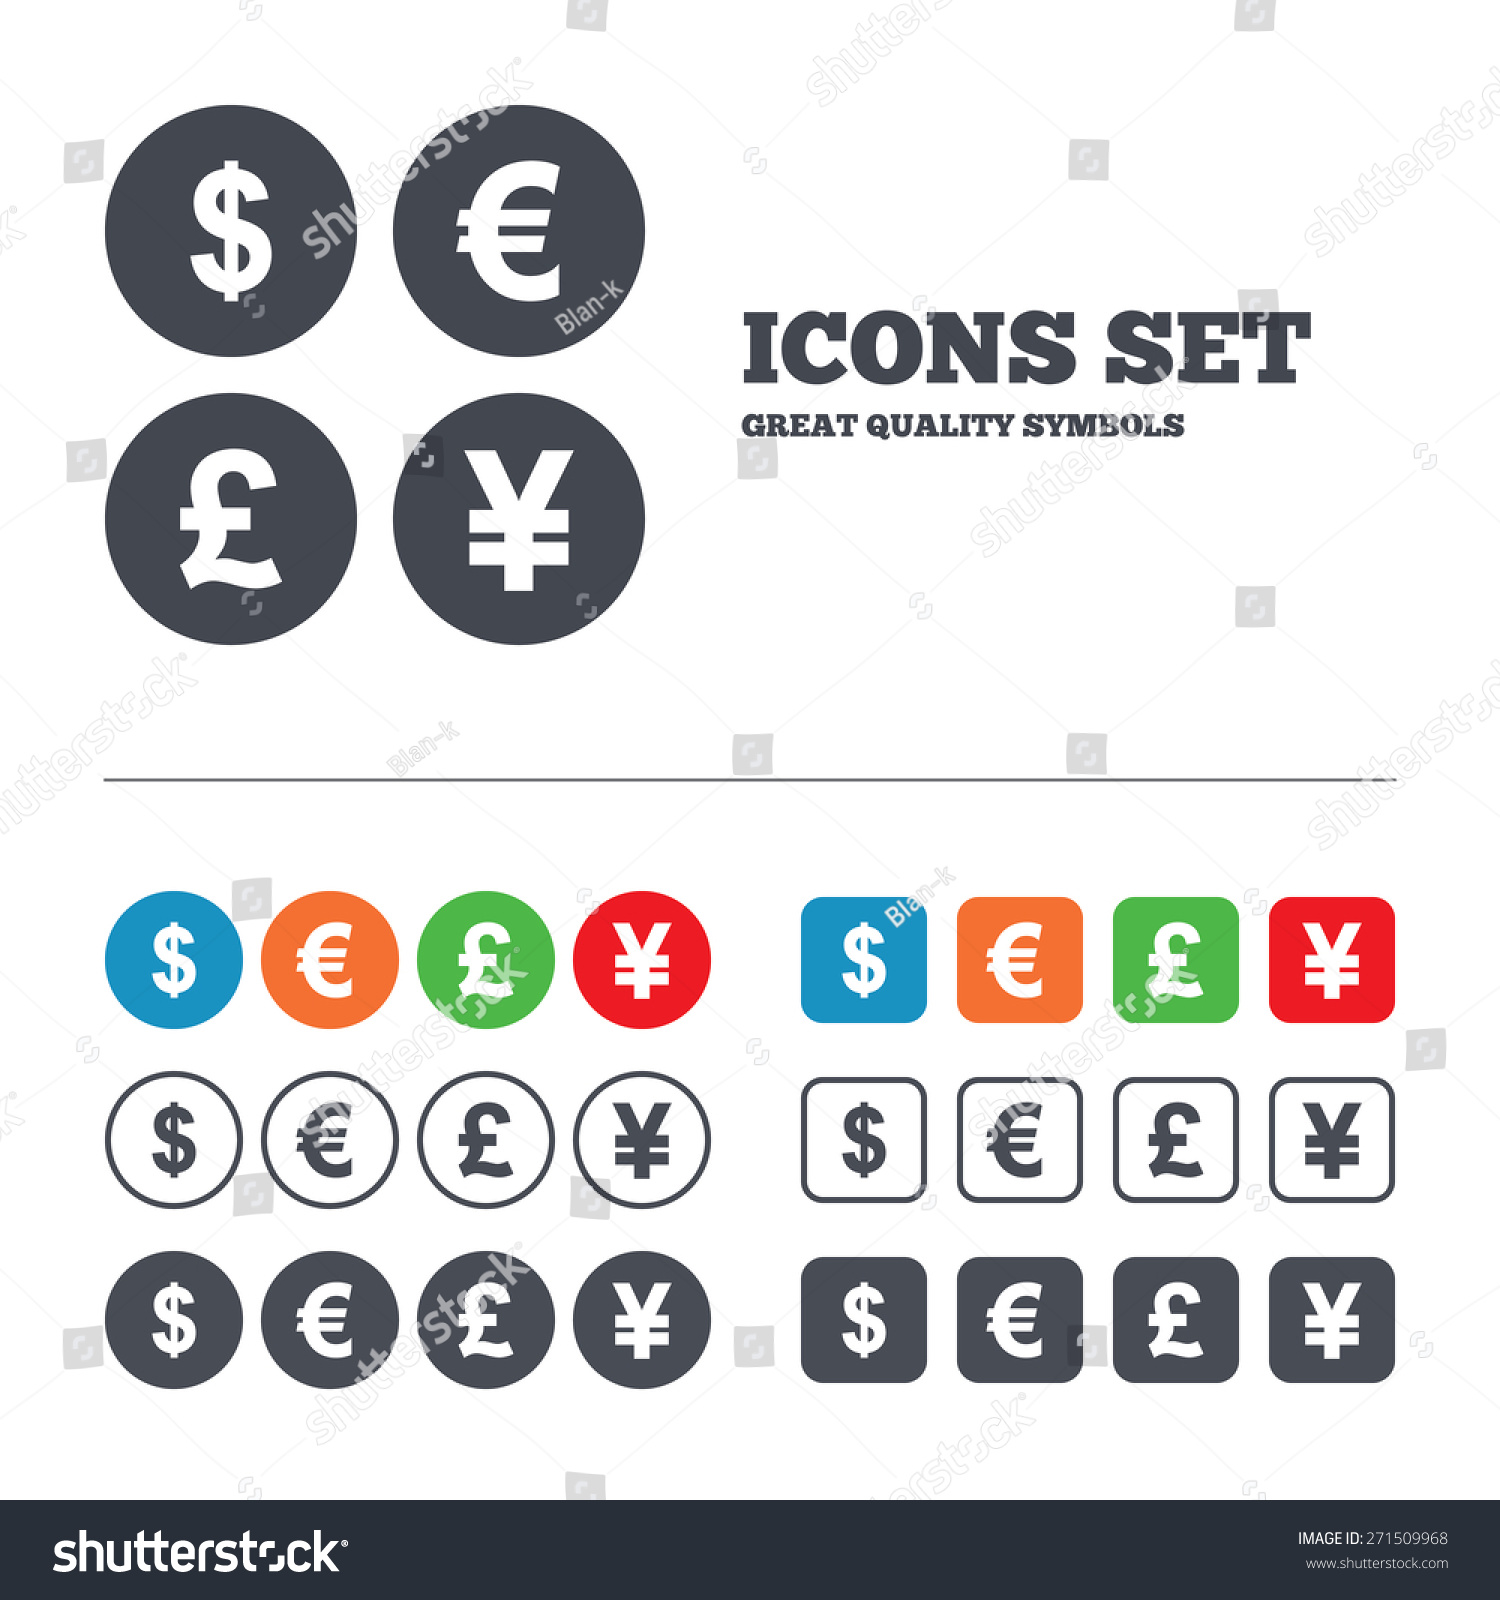 Gbp currency sign 1 uk pound in us dollars how to change the currency symbol in excel buycottarizona Image collections